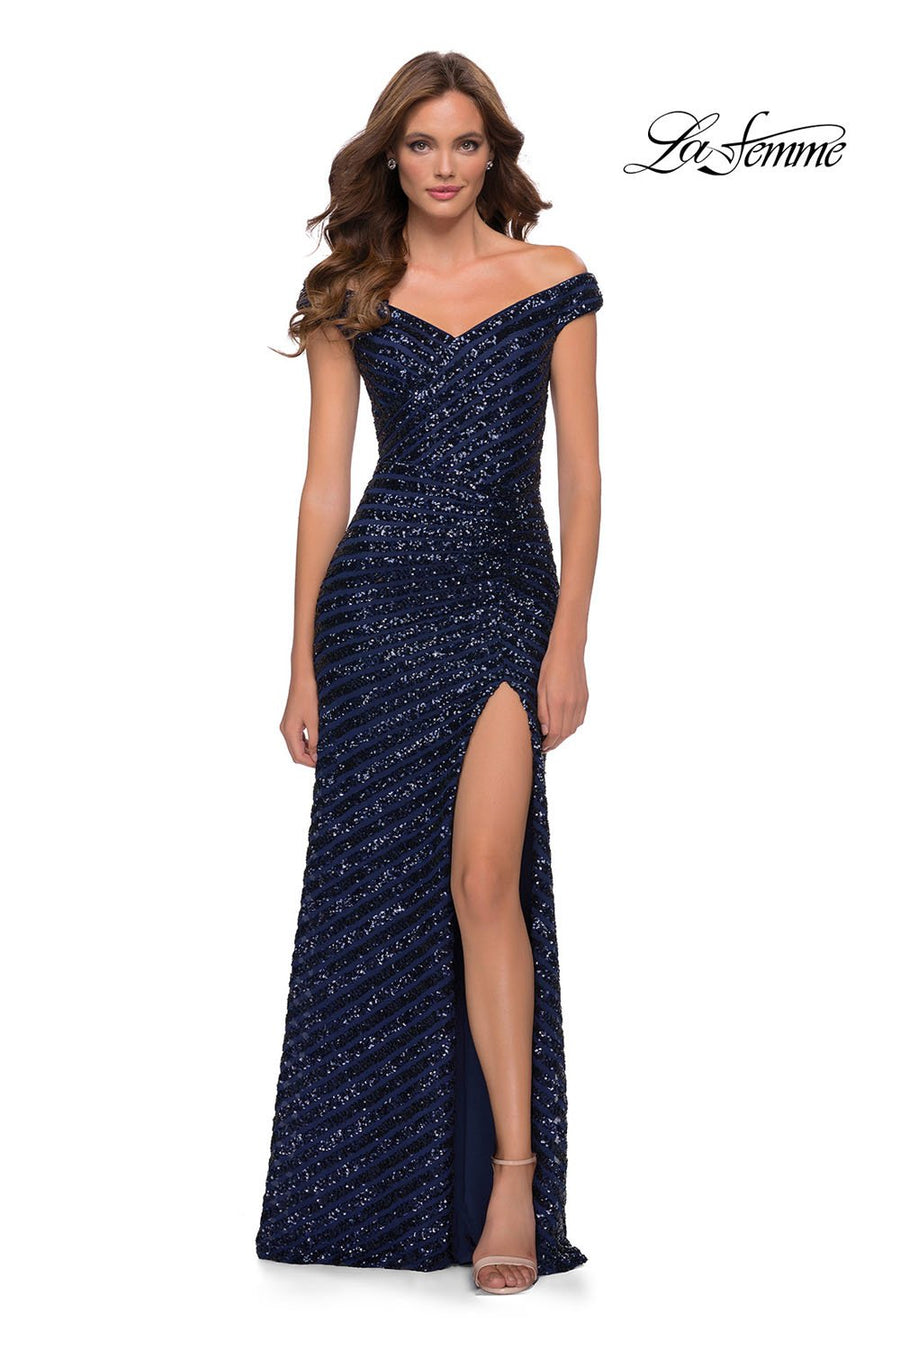 La Femme 29653 prom dress images.  La Femme 29653 is available in these colors: Navy.